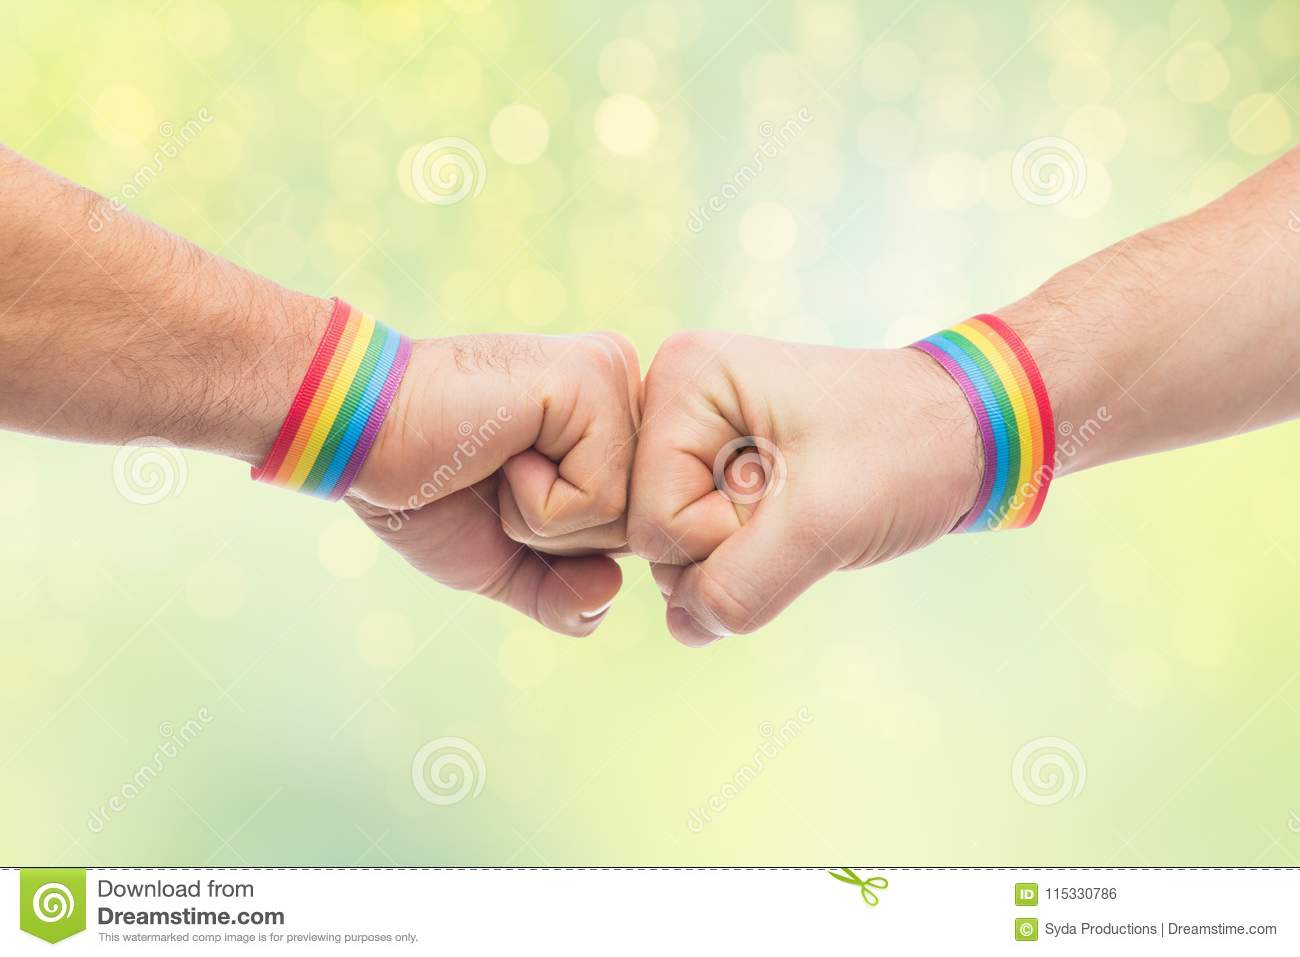 Hands with gay pride wristbands make fist bump